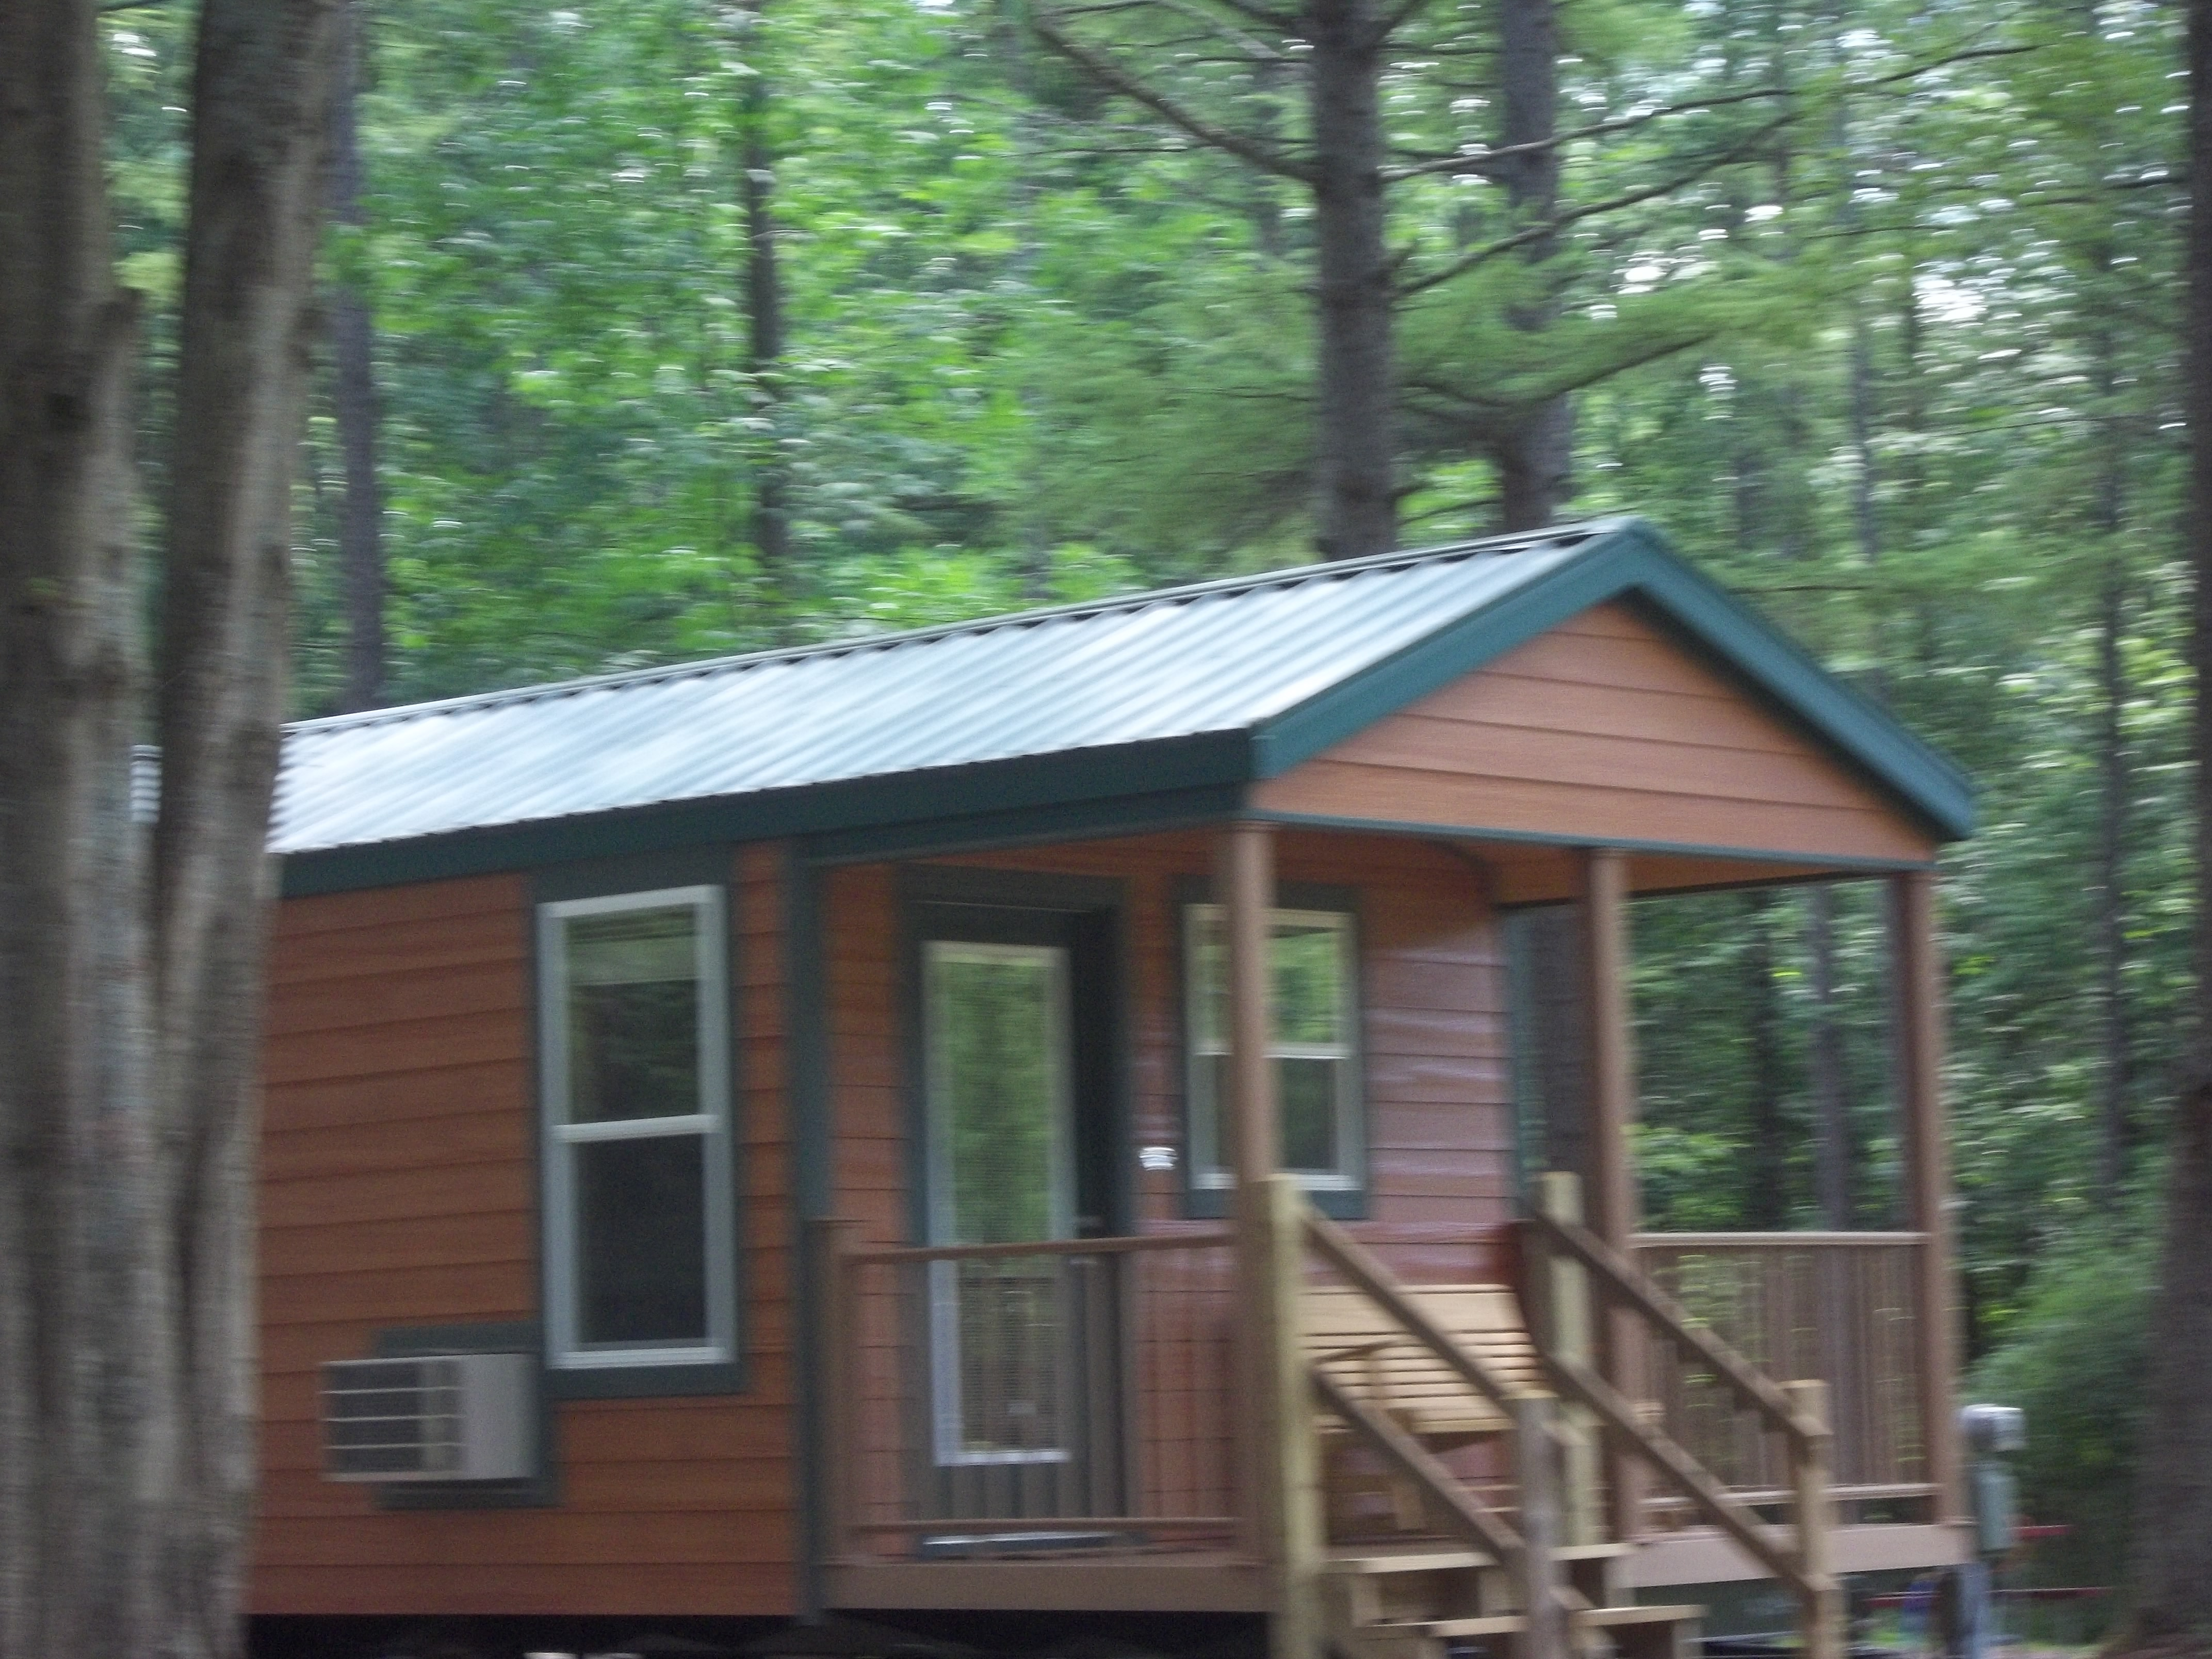 Beautiful Bathrooms Letchworth houghton, new york cabin accommodations | houghton / letchworth koa